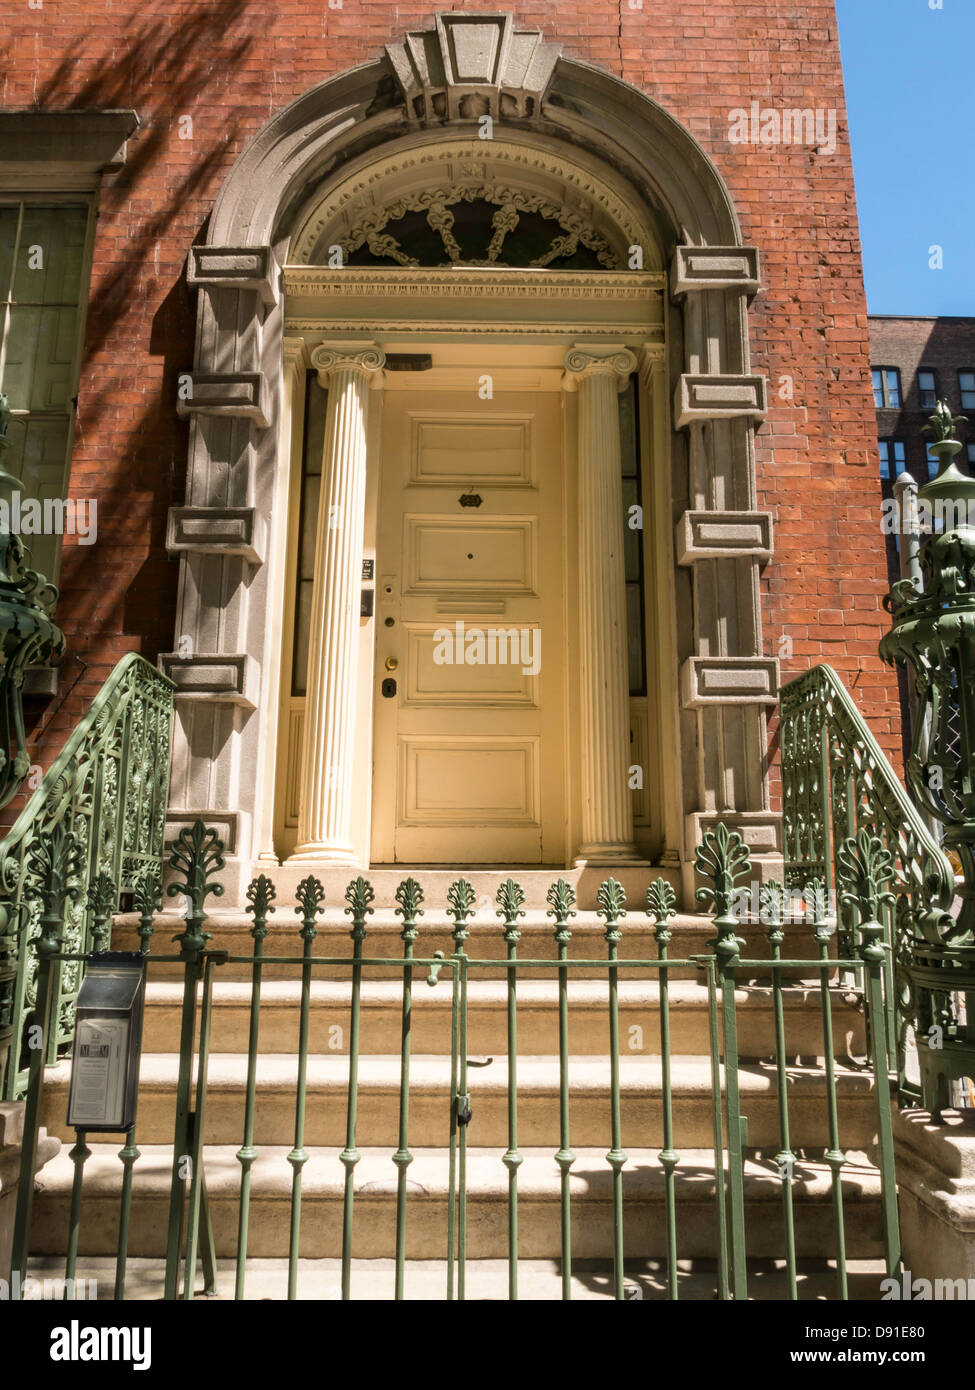 Old Merchant's House Museum, New York City, USA - Stock Image